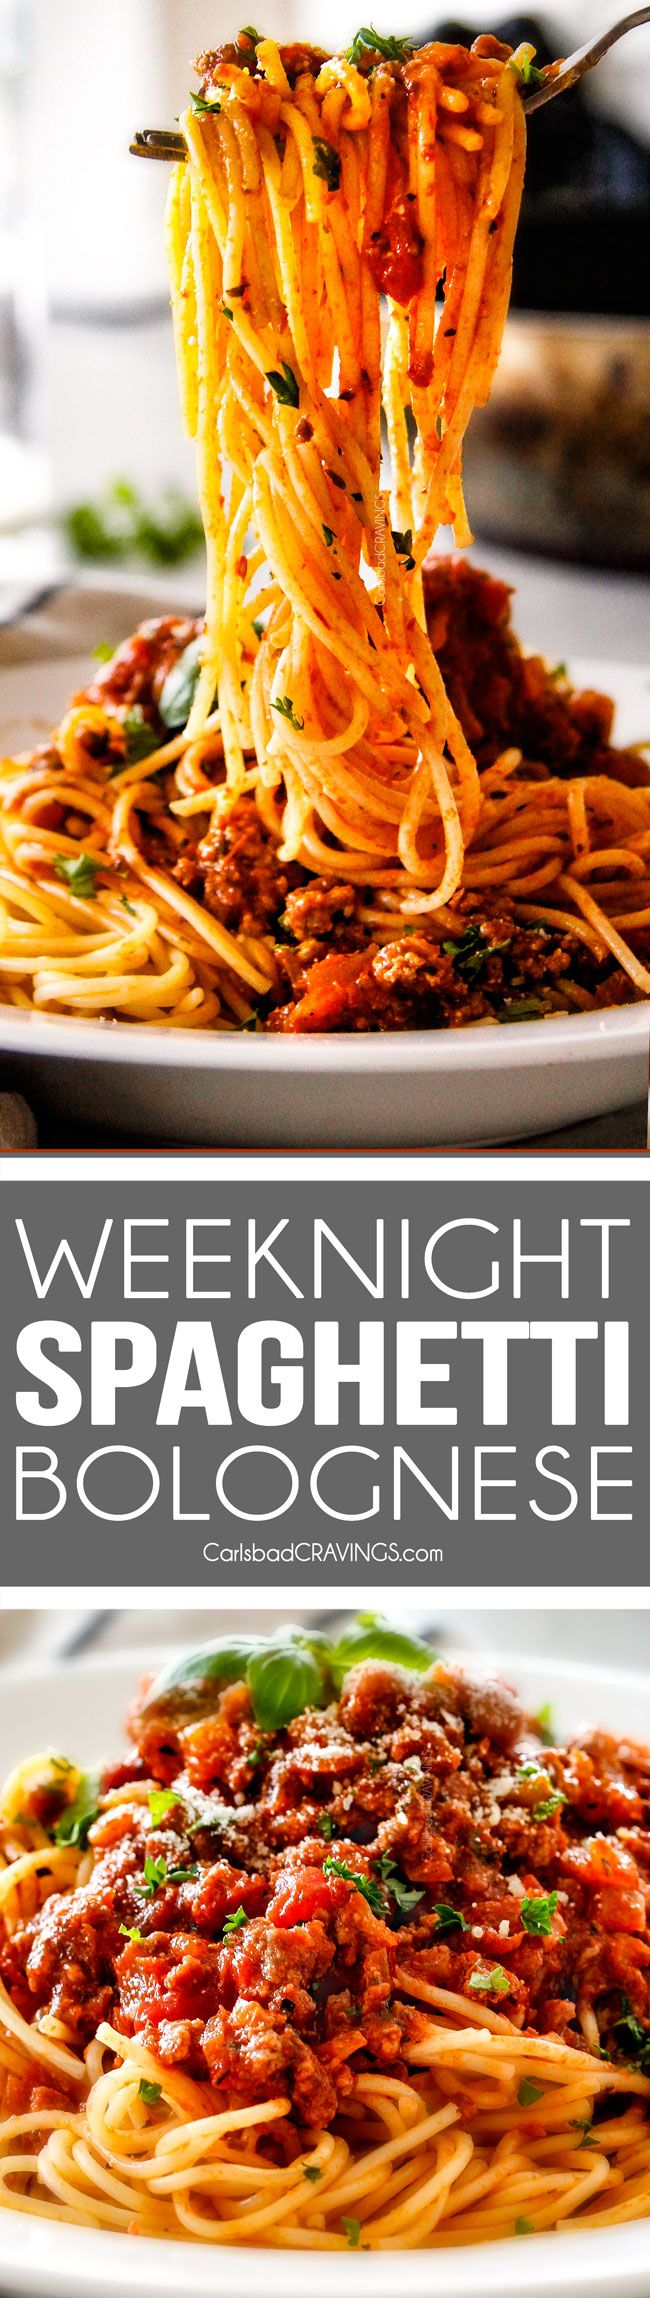 Slow Cooker: 30 Minute Weeknight Spaghetti Bolognese - Carlsbad...